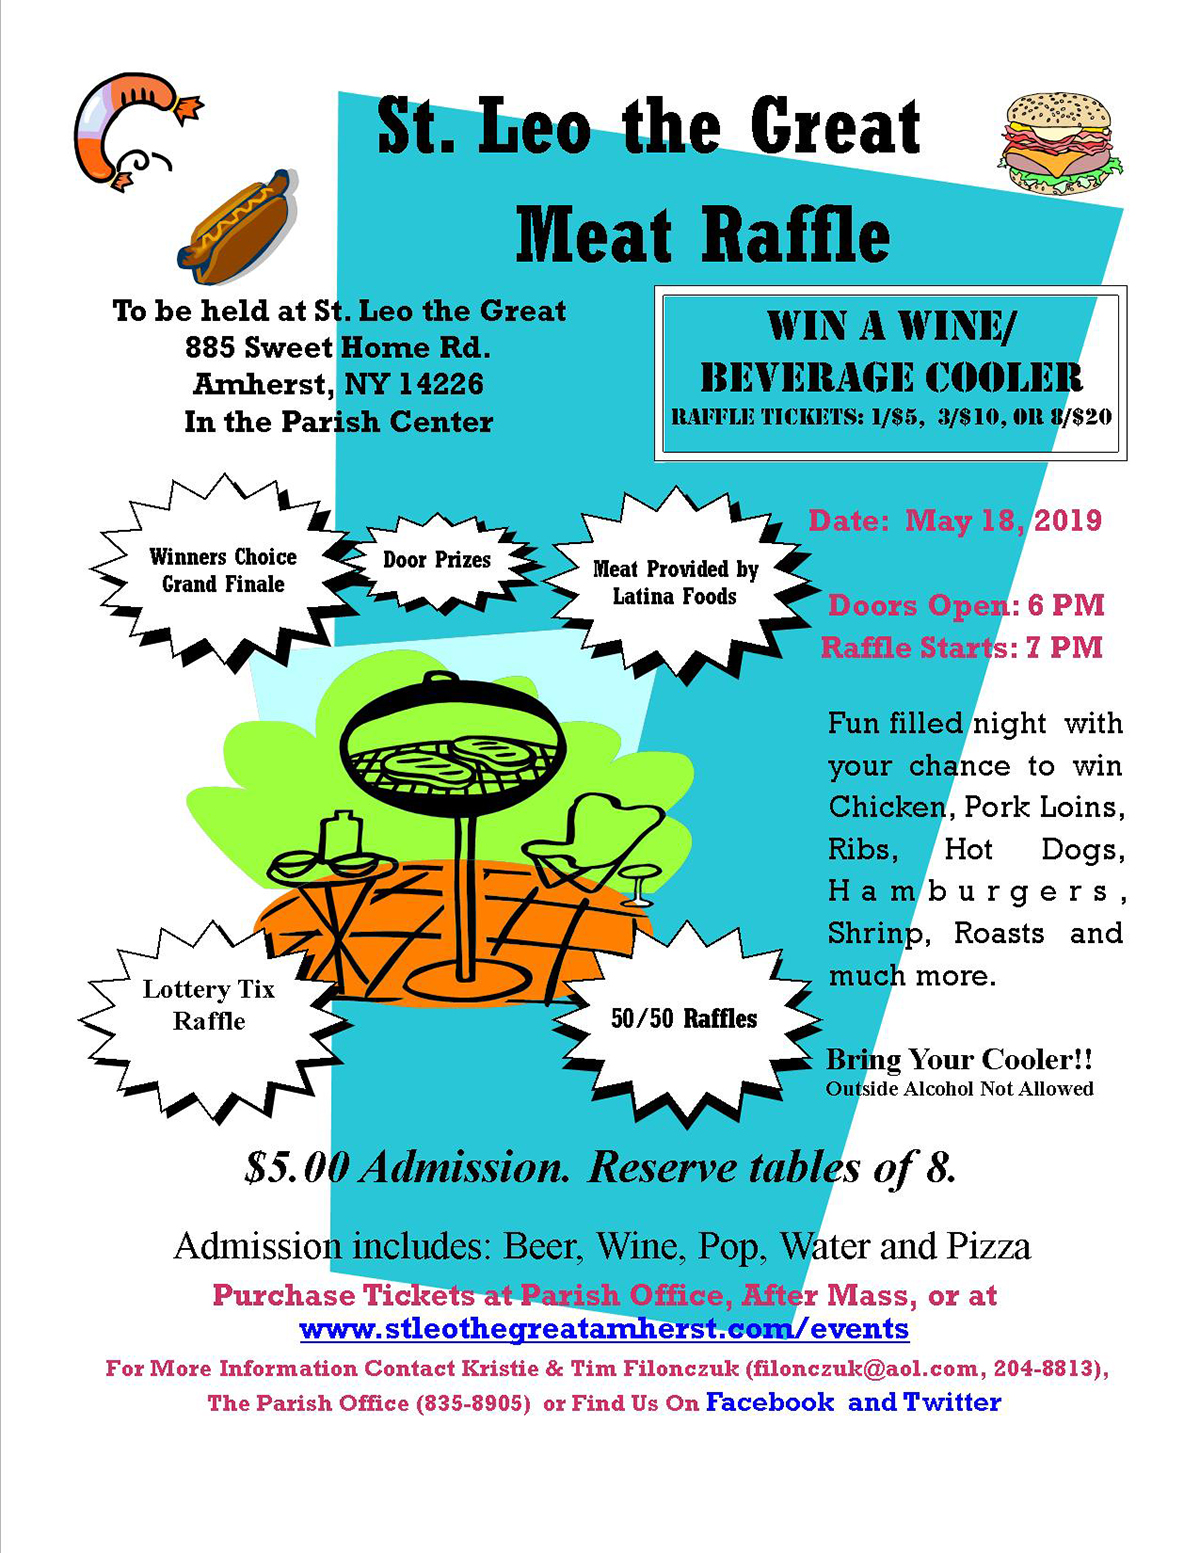 C_UsersM0025710DocumentsMiscSpring  Meat Raffle Flyer May 2019.jpg